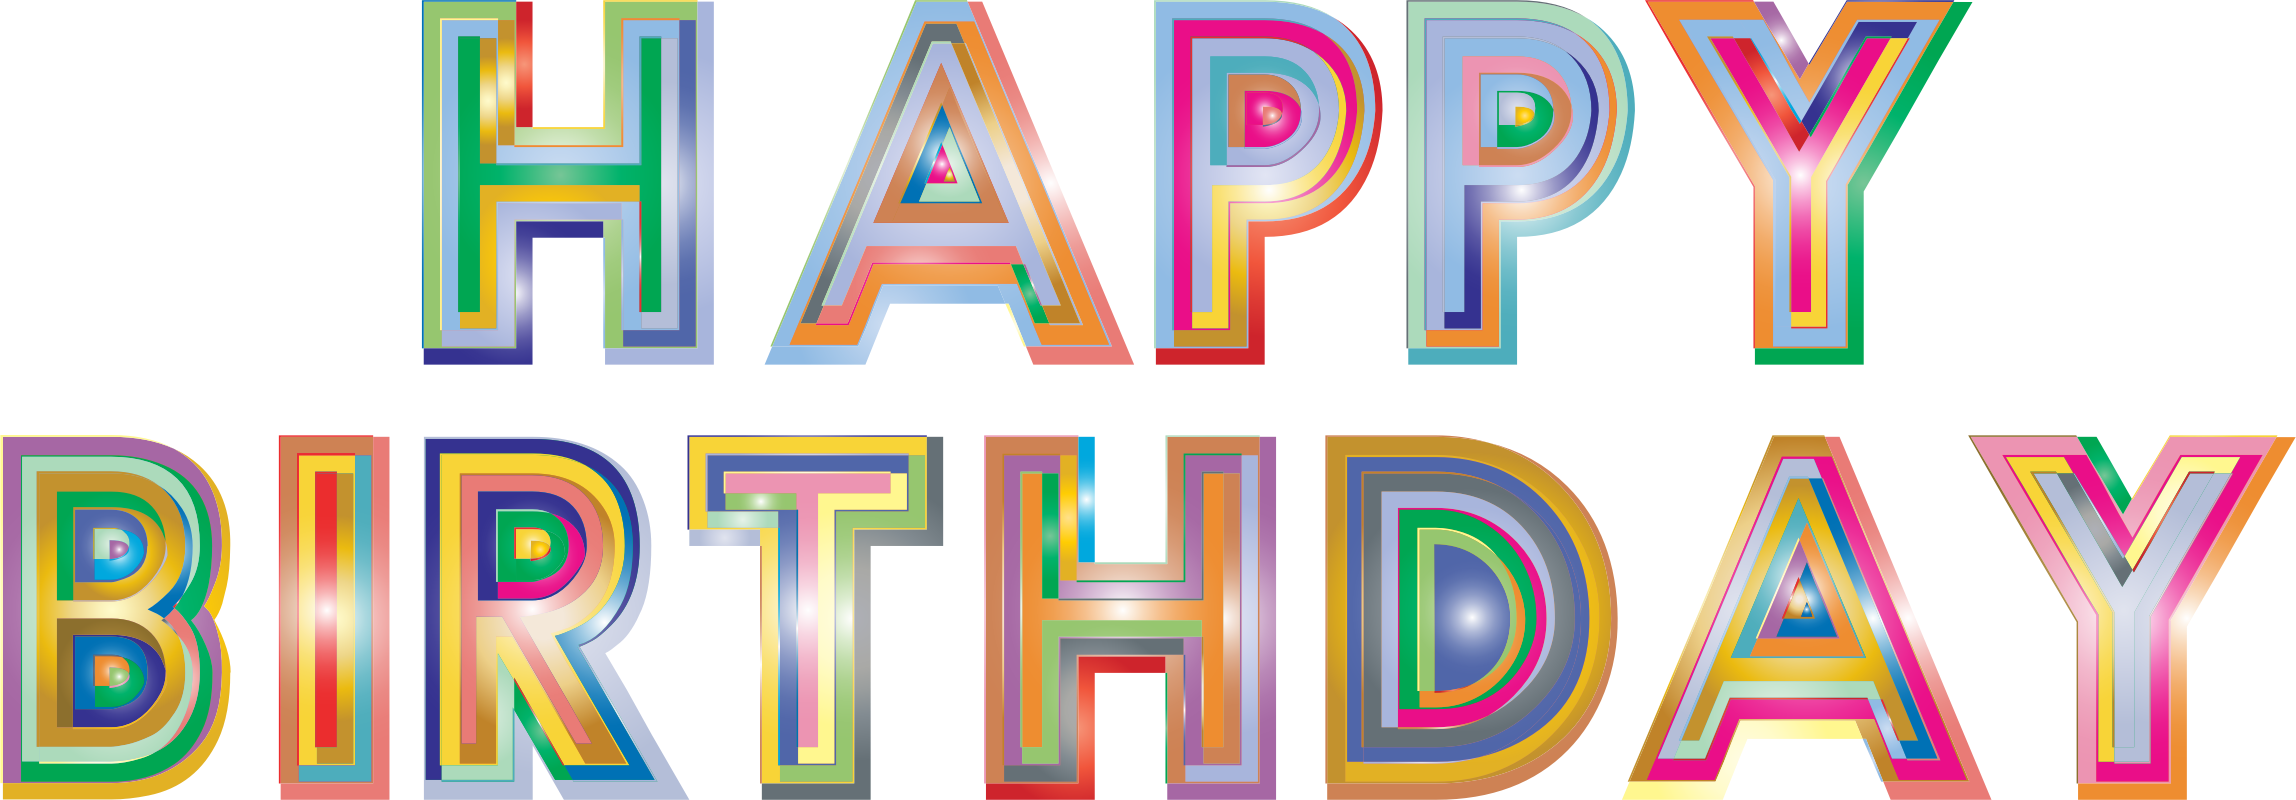 Happy Birthday Typography 2 by GDJ